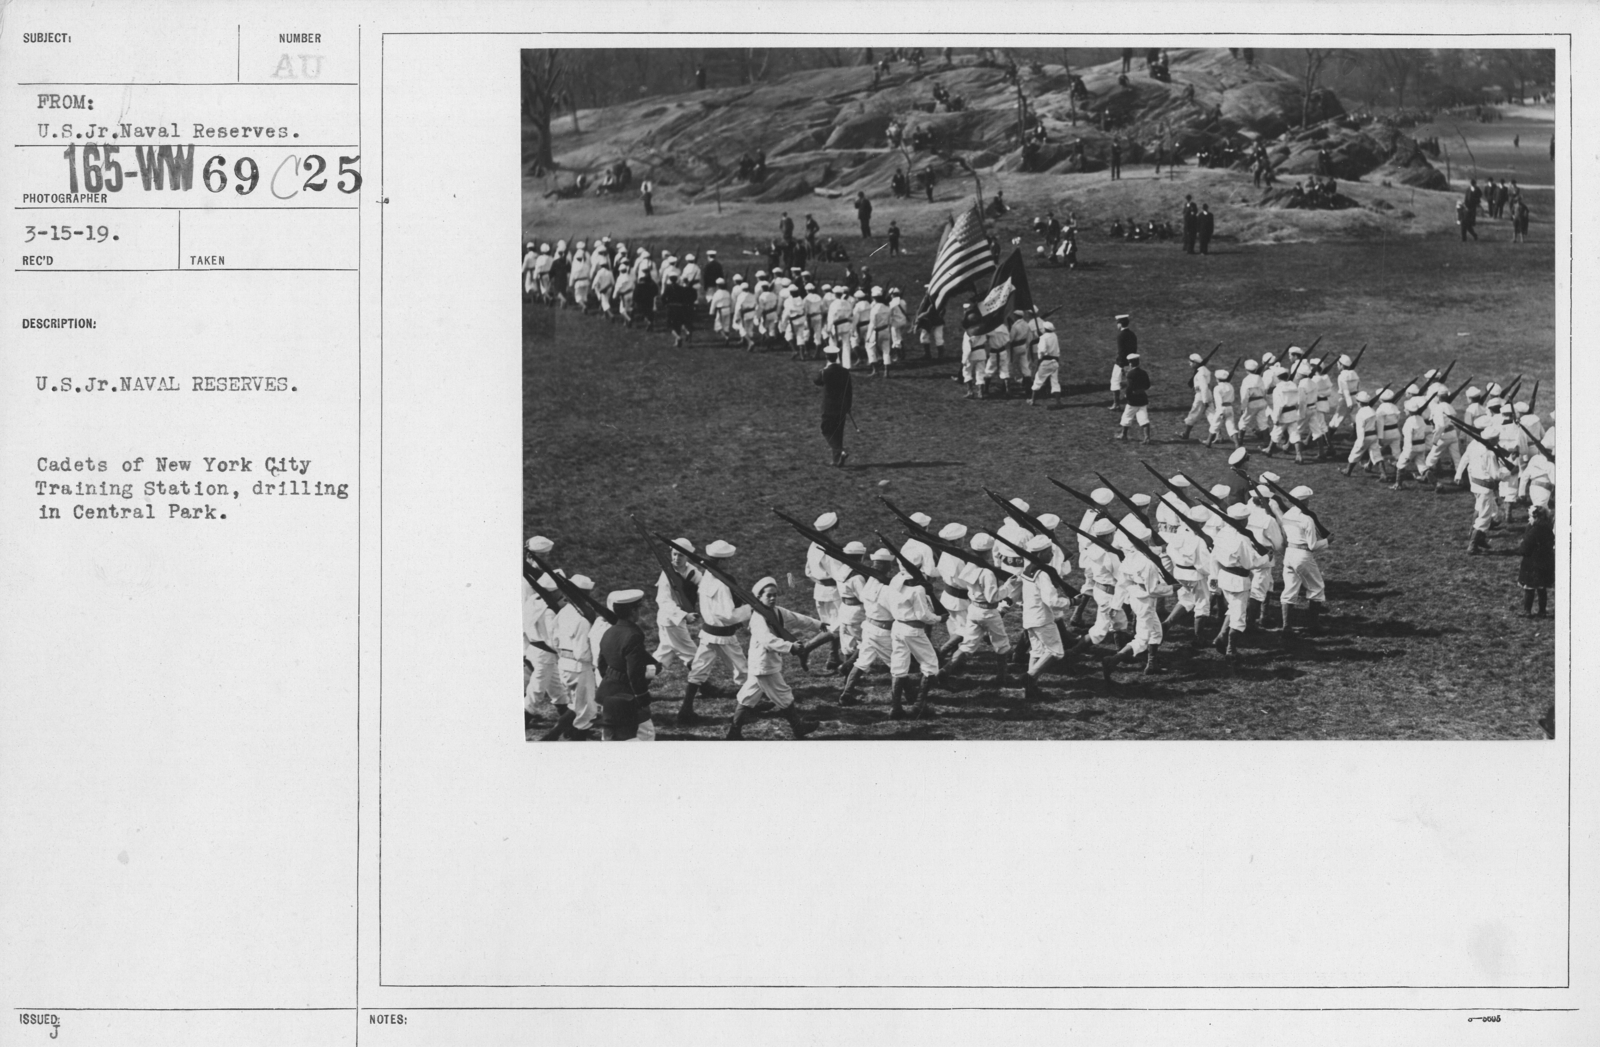 Boy's Activities - Junior Naval Reserve - Other Camps - U.S. Jr. Naval Reserves. Cadets of New York City Training Station, drilling in Central Park